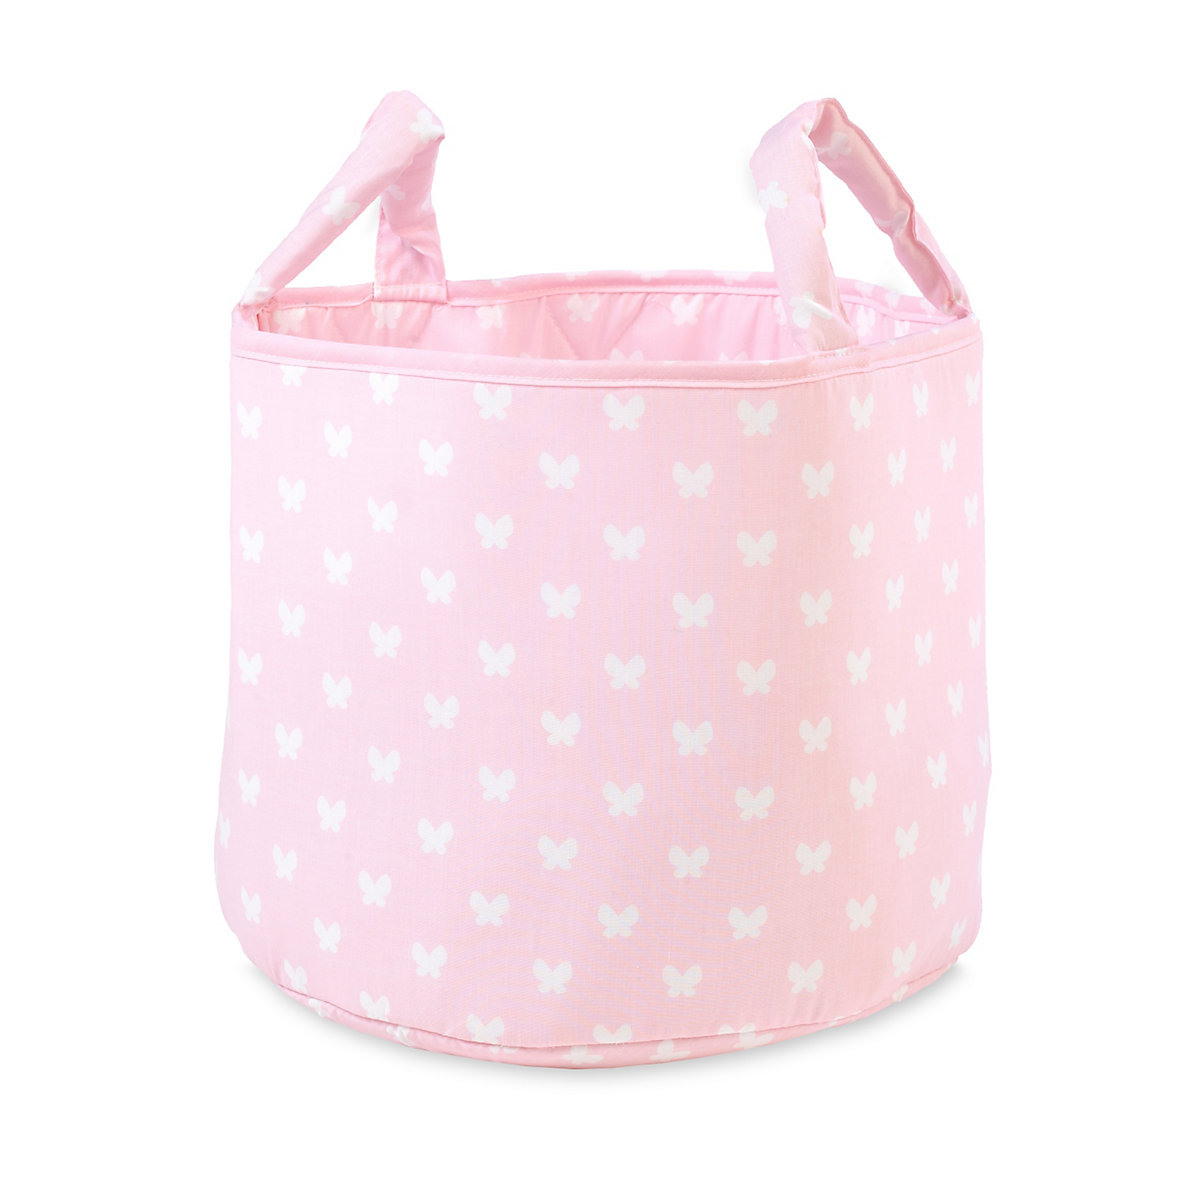 Mothercare Fabric Storage Basket- Pink Butterflies